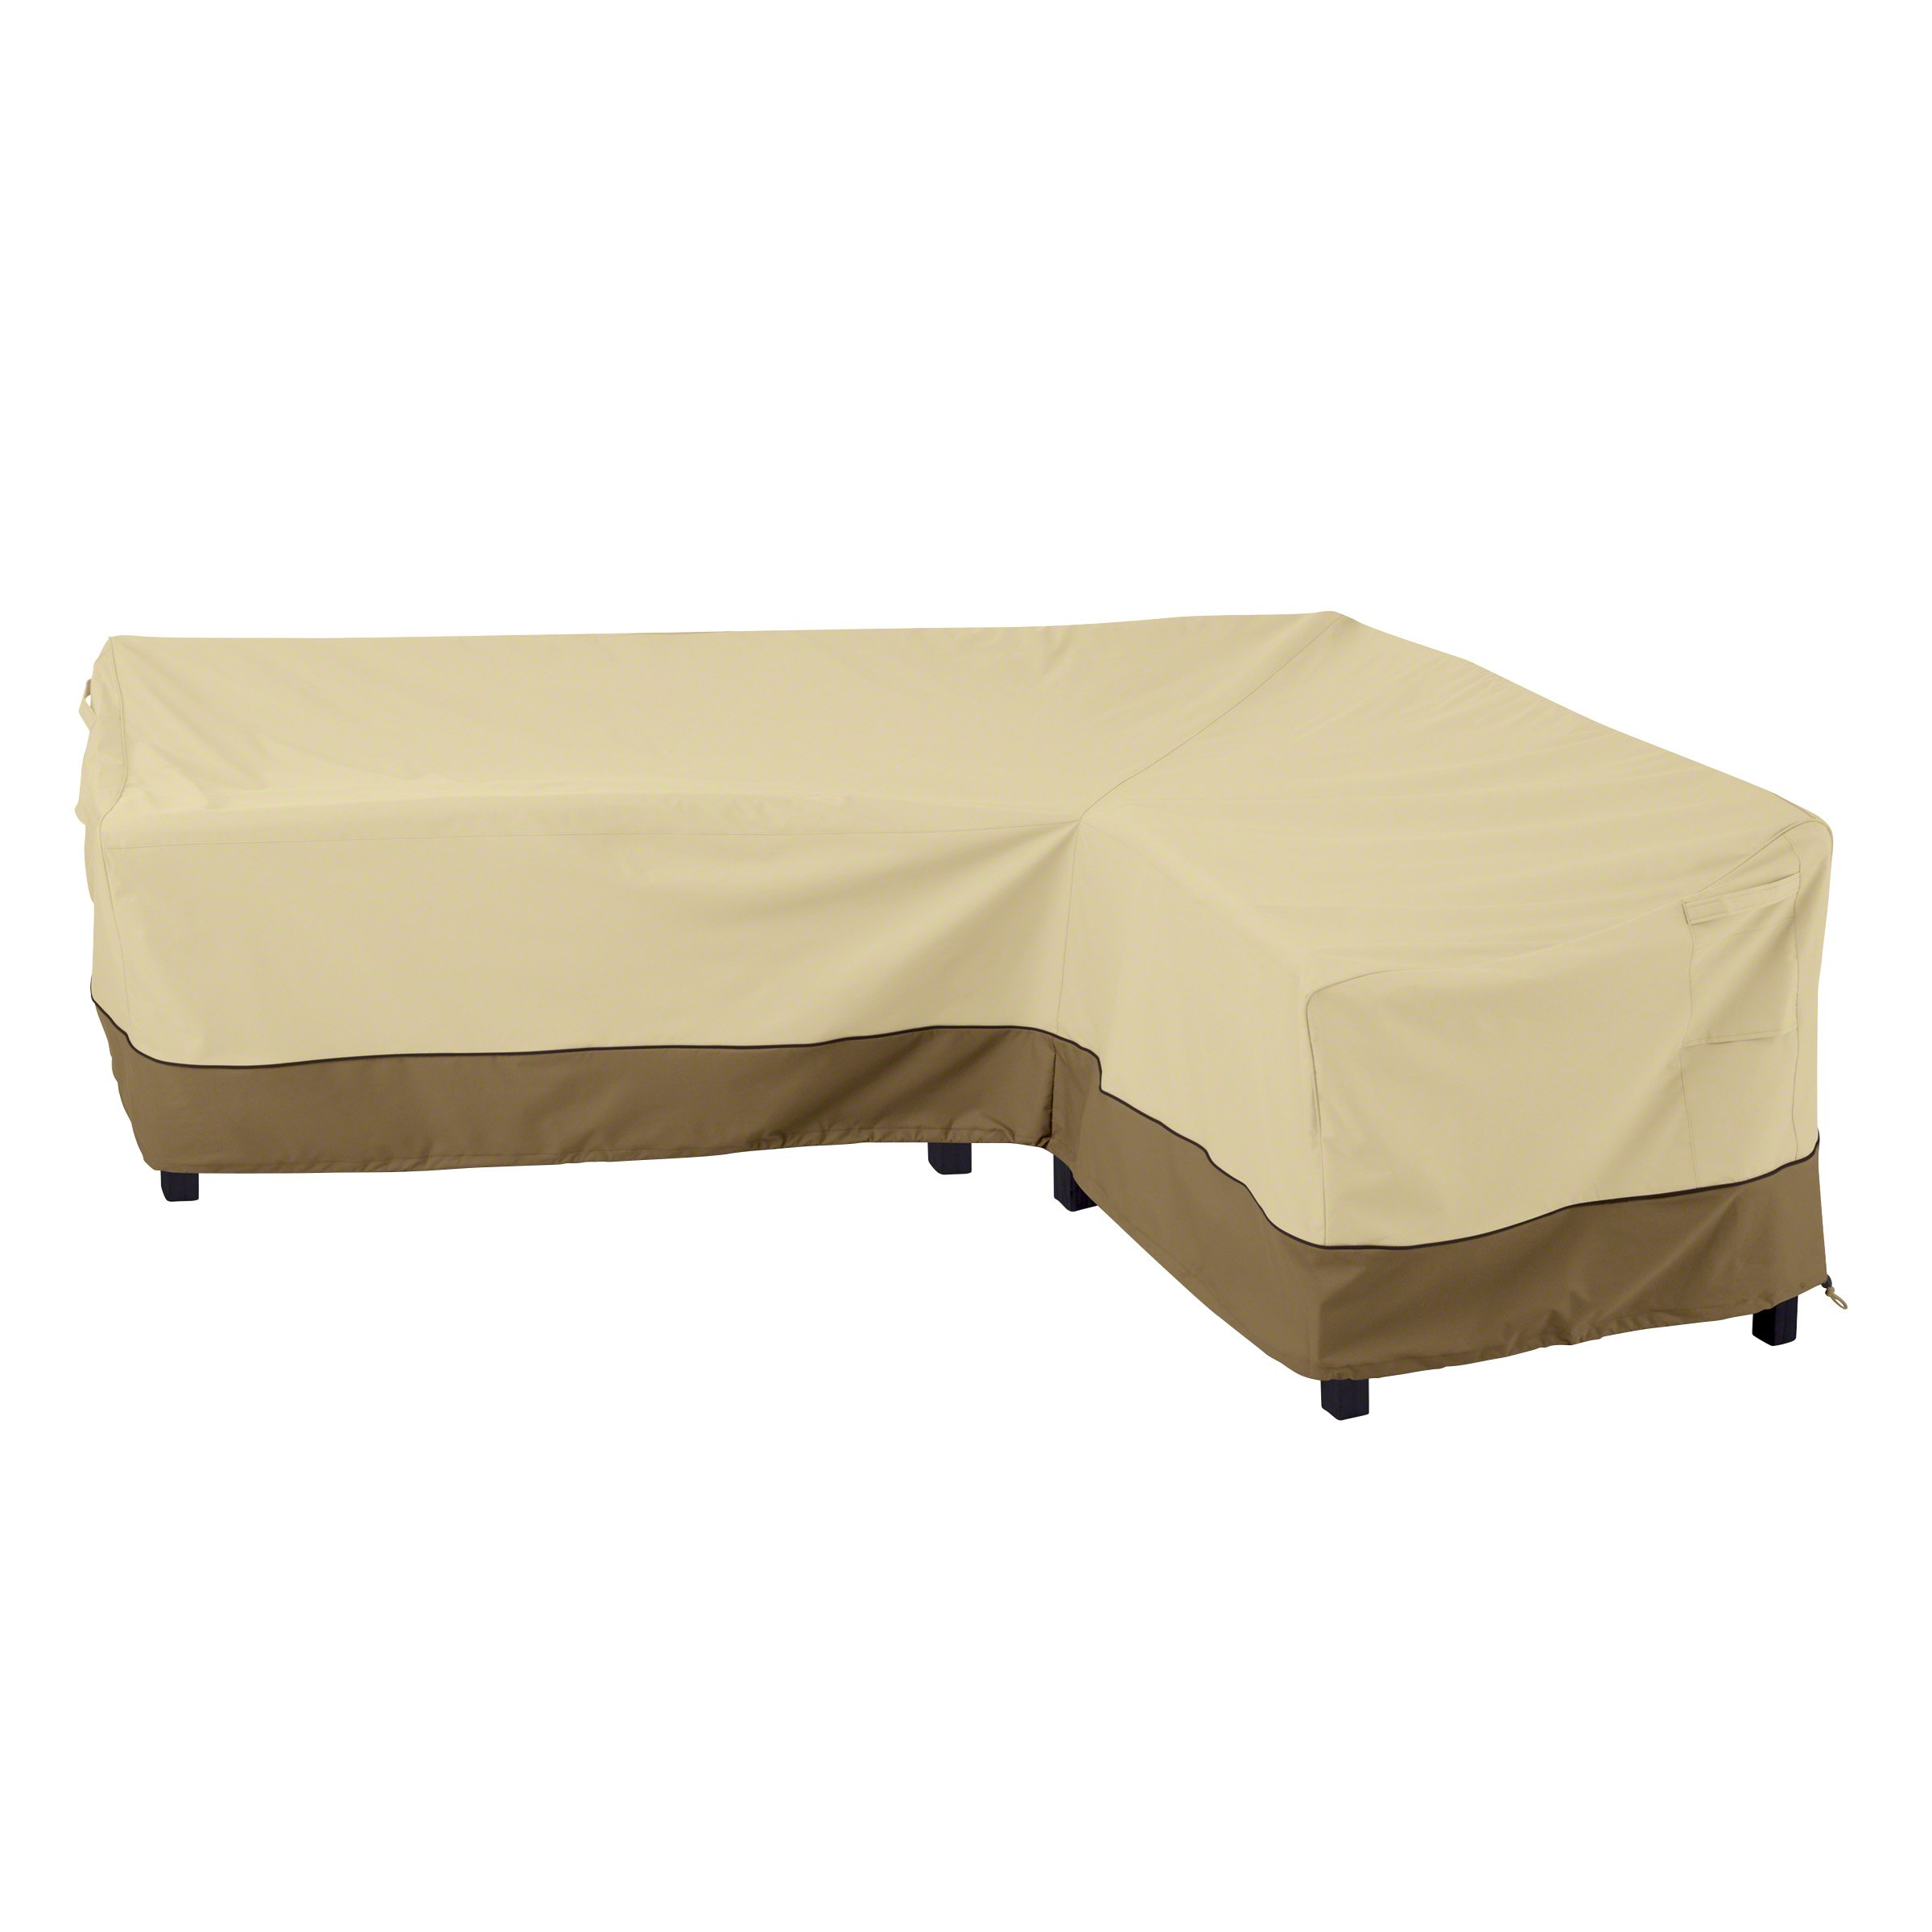 Classic Accessories Veranda L-Shaped Sectional Sofa Cover, Right Facing, Large by Classic Accessories